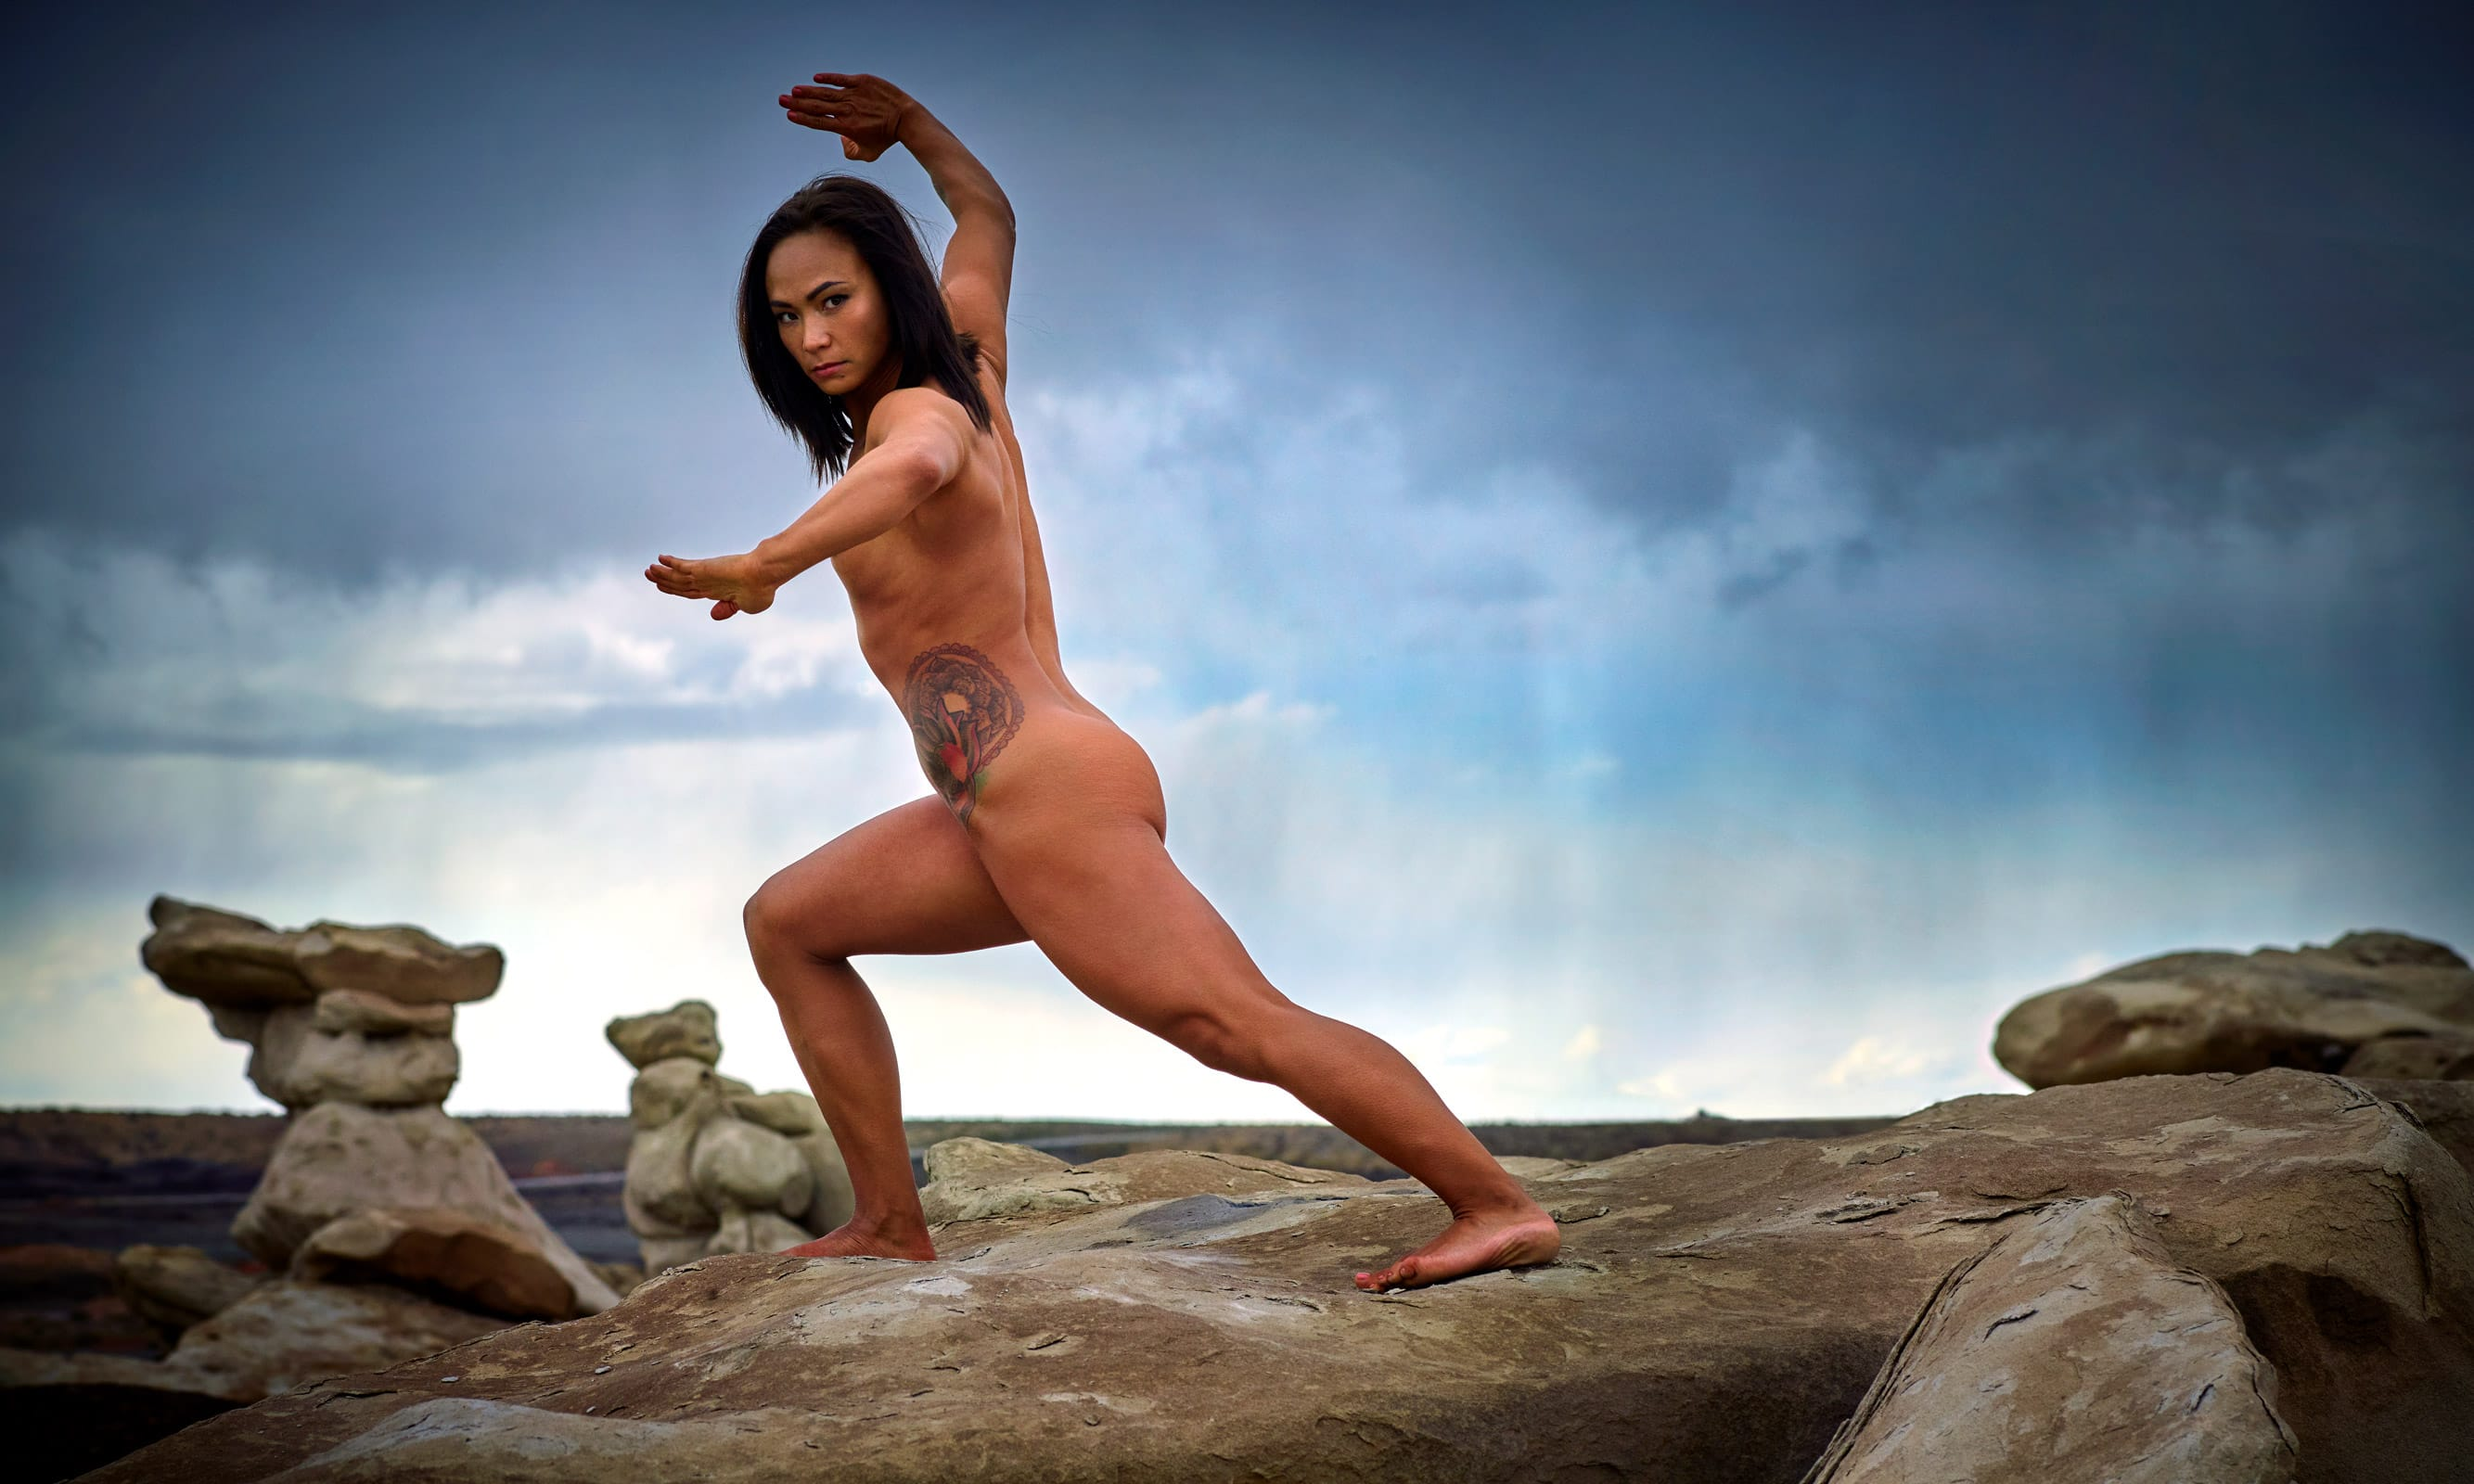 Michelle Waterson posing nude for ESPN